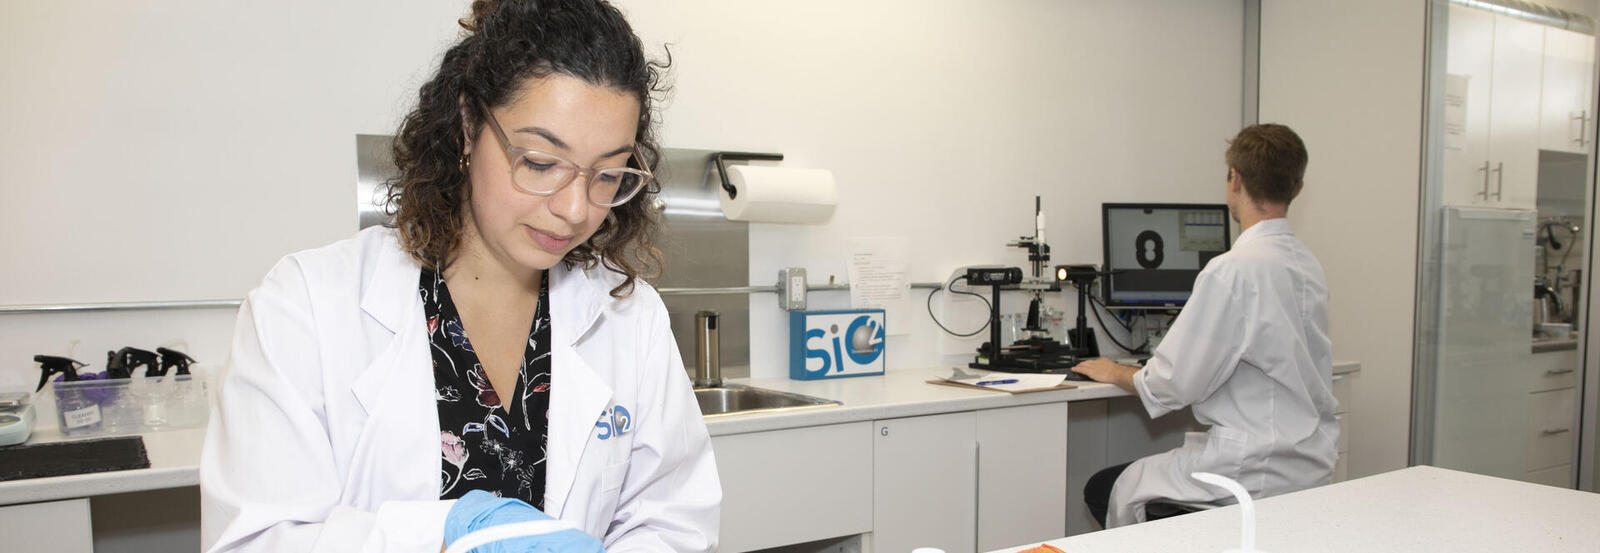 Researchers working in the SiO2 Innovation Lab